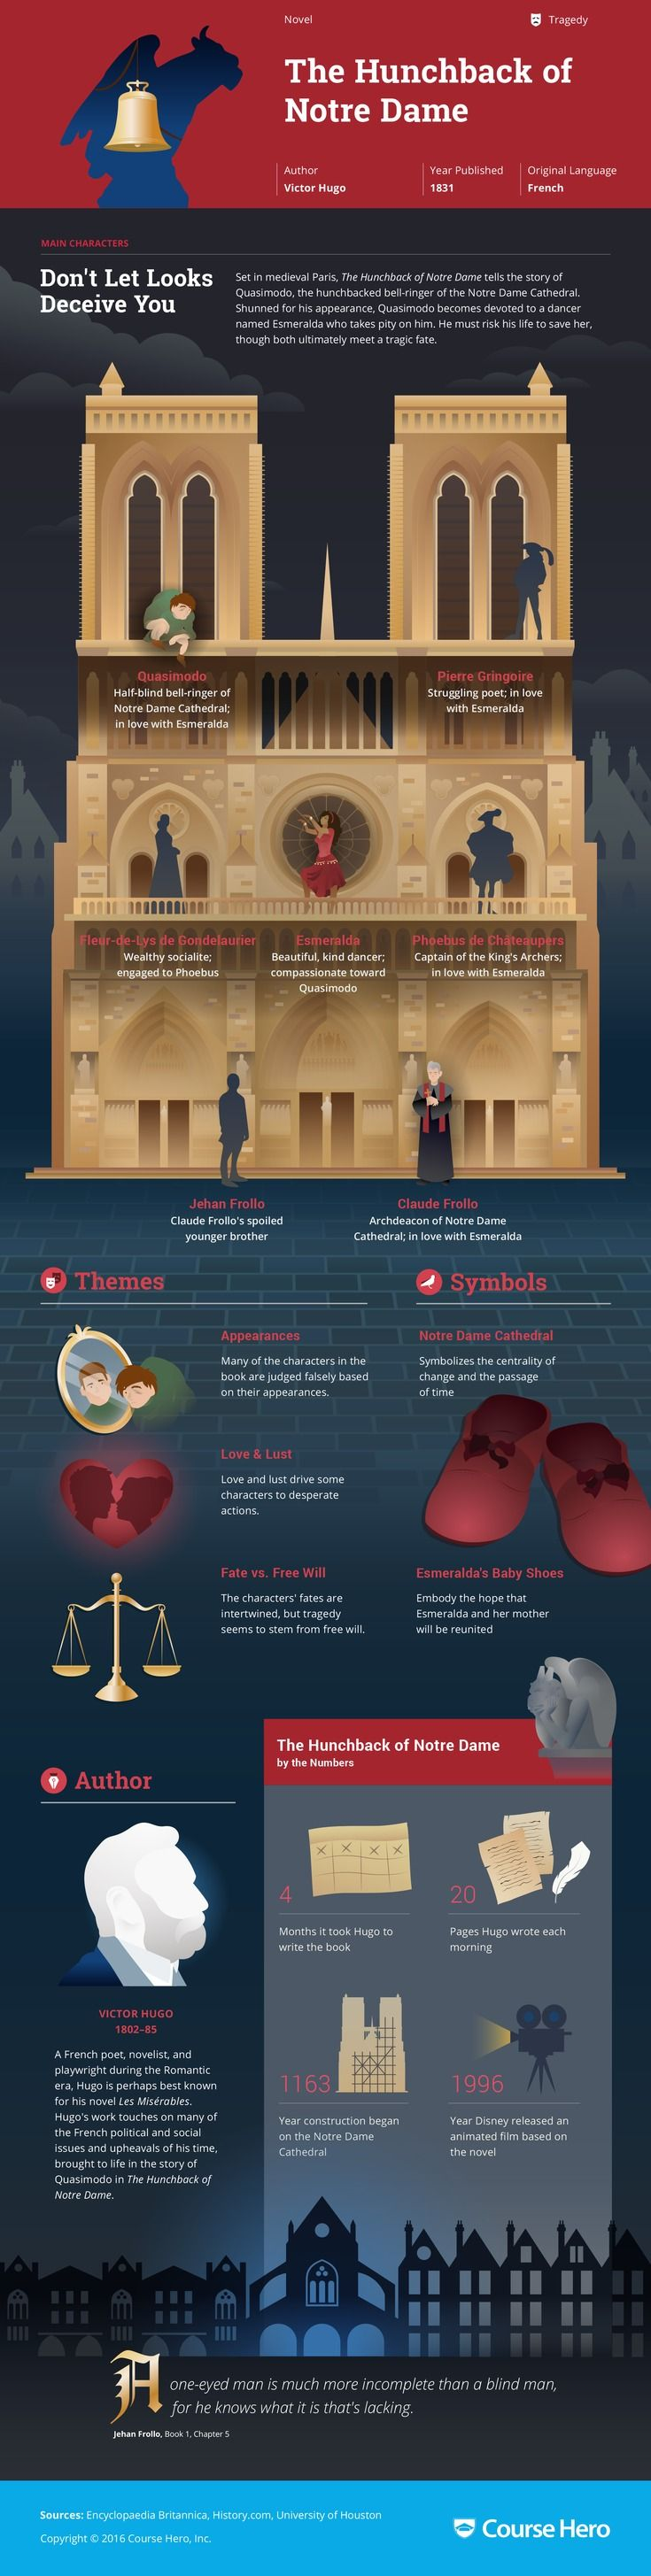 This @CourseHero infographic on The Hunchback of Notre Dame is both visually…